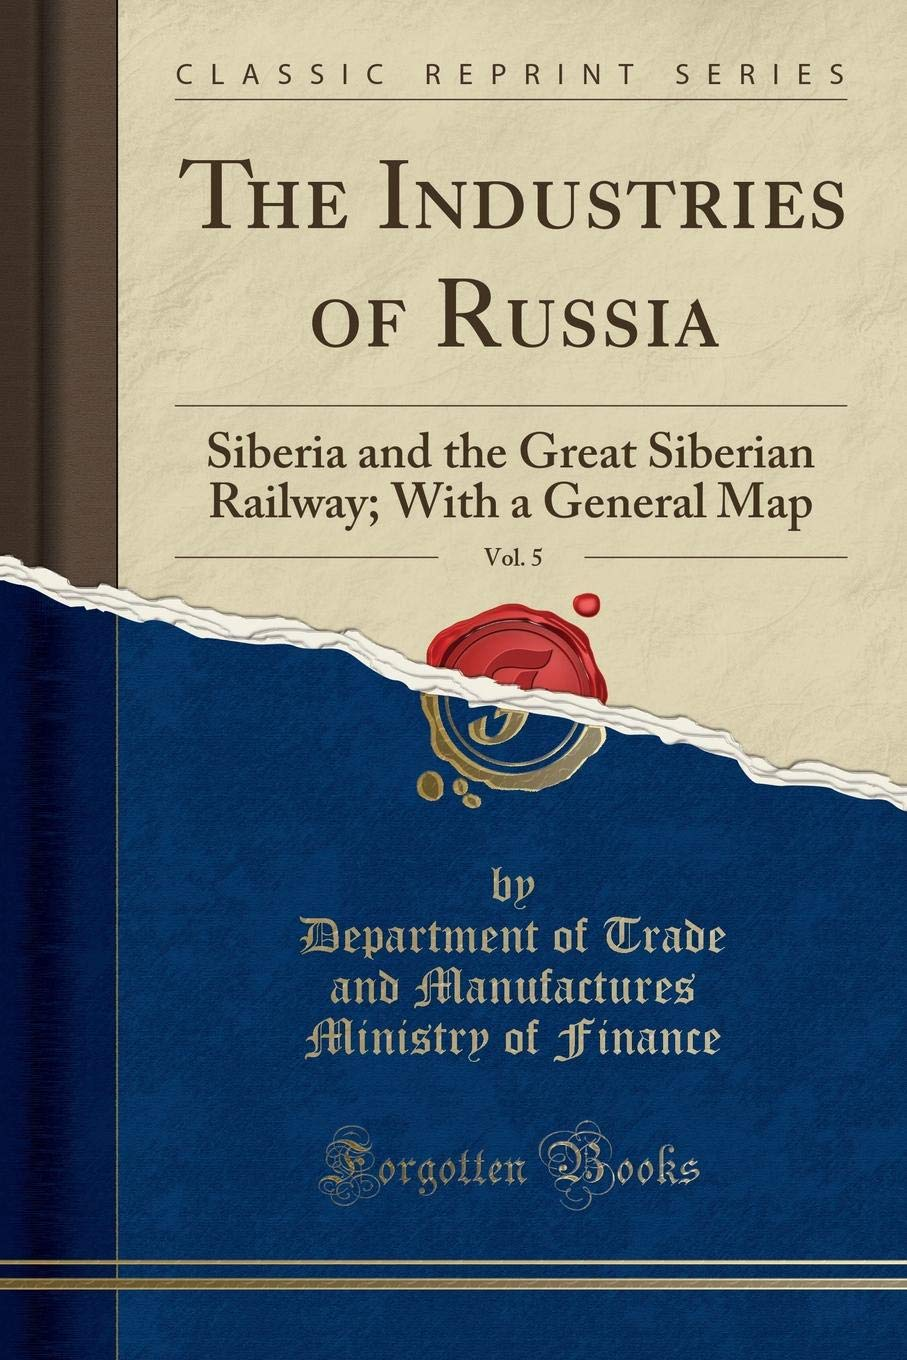 Read Online The Industries of Russia, Vol. 5: Siberia and the Great Siberian Railway; With a General Map (Classic Reprint) PDF